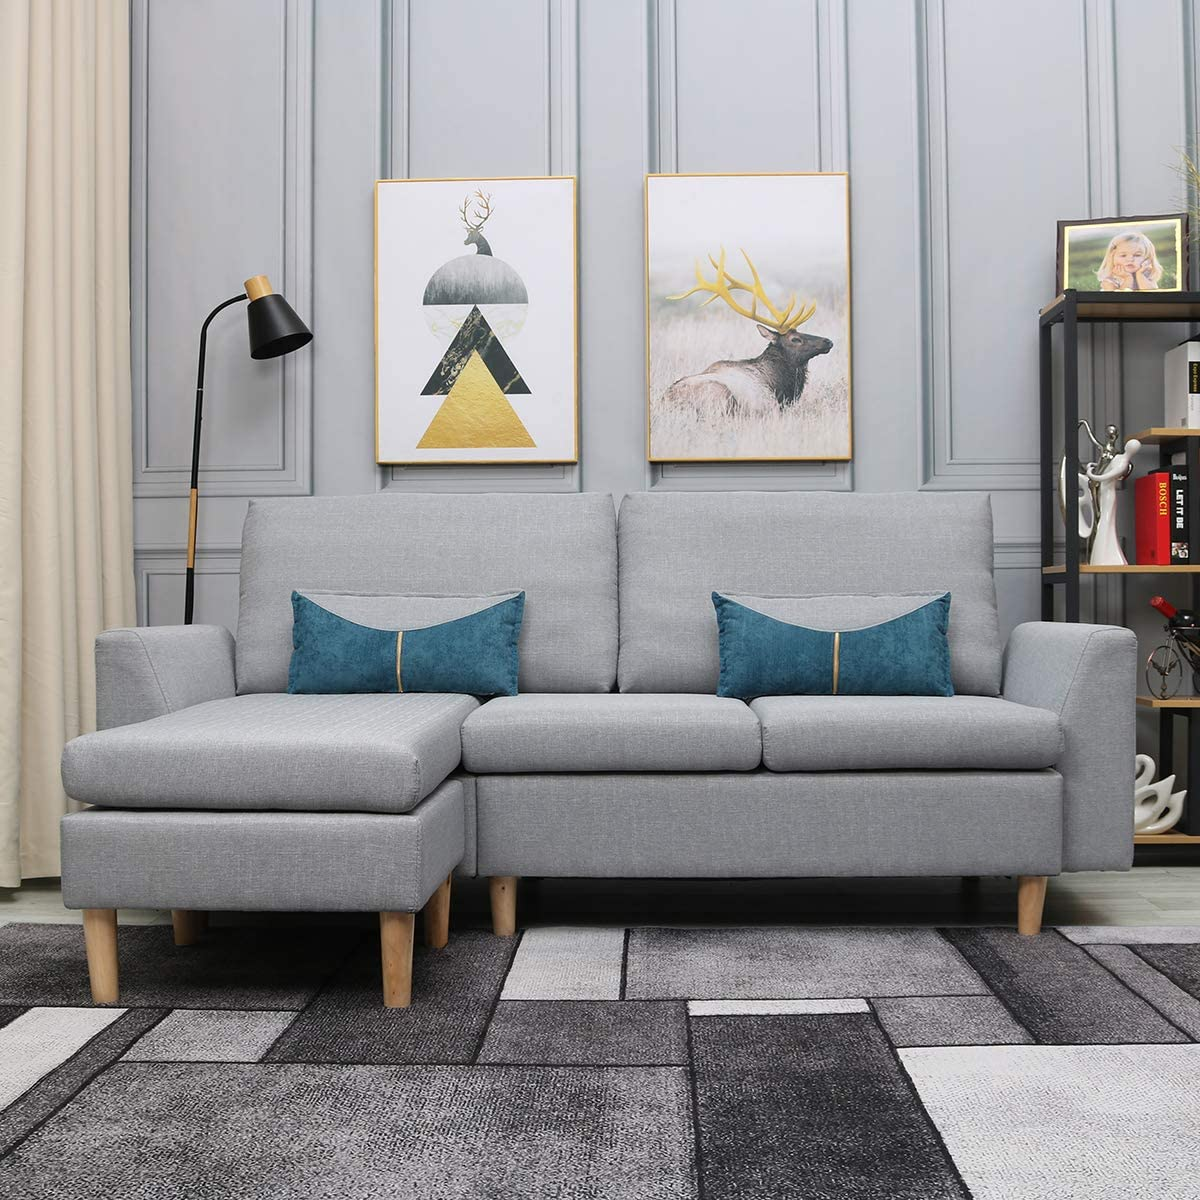 small-apartment-sectional-sofa-77-inches-couch-with-chaise-grey-upholstery-affordable-space-saving-furniture